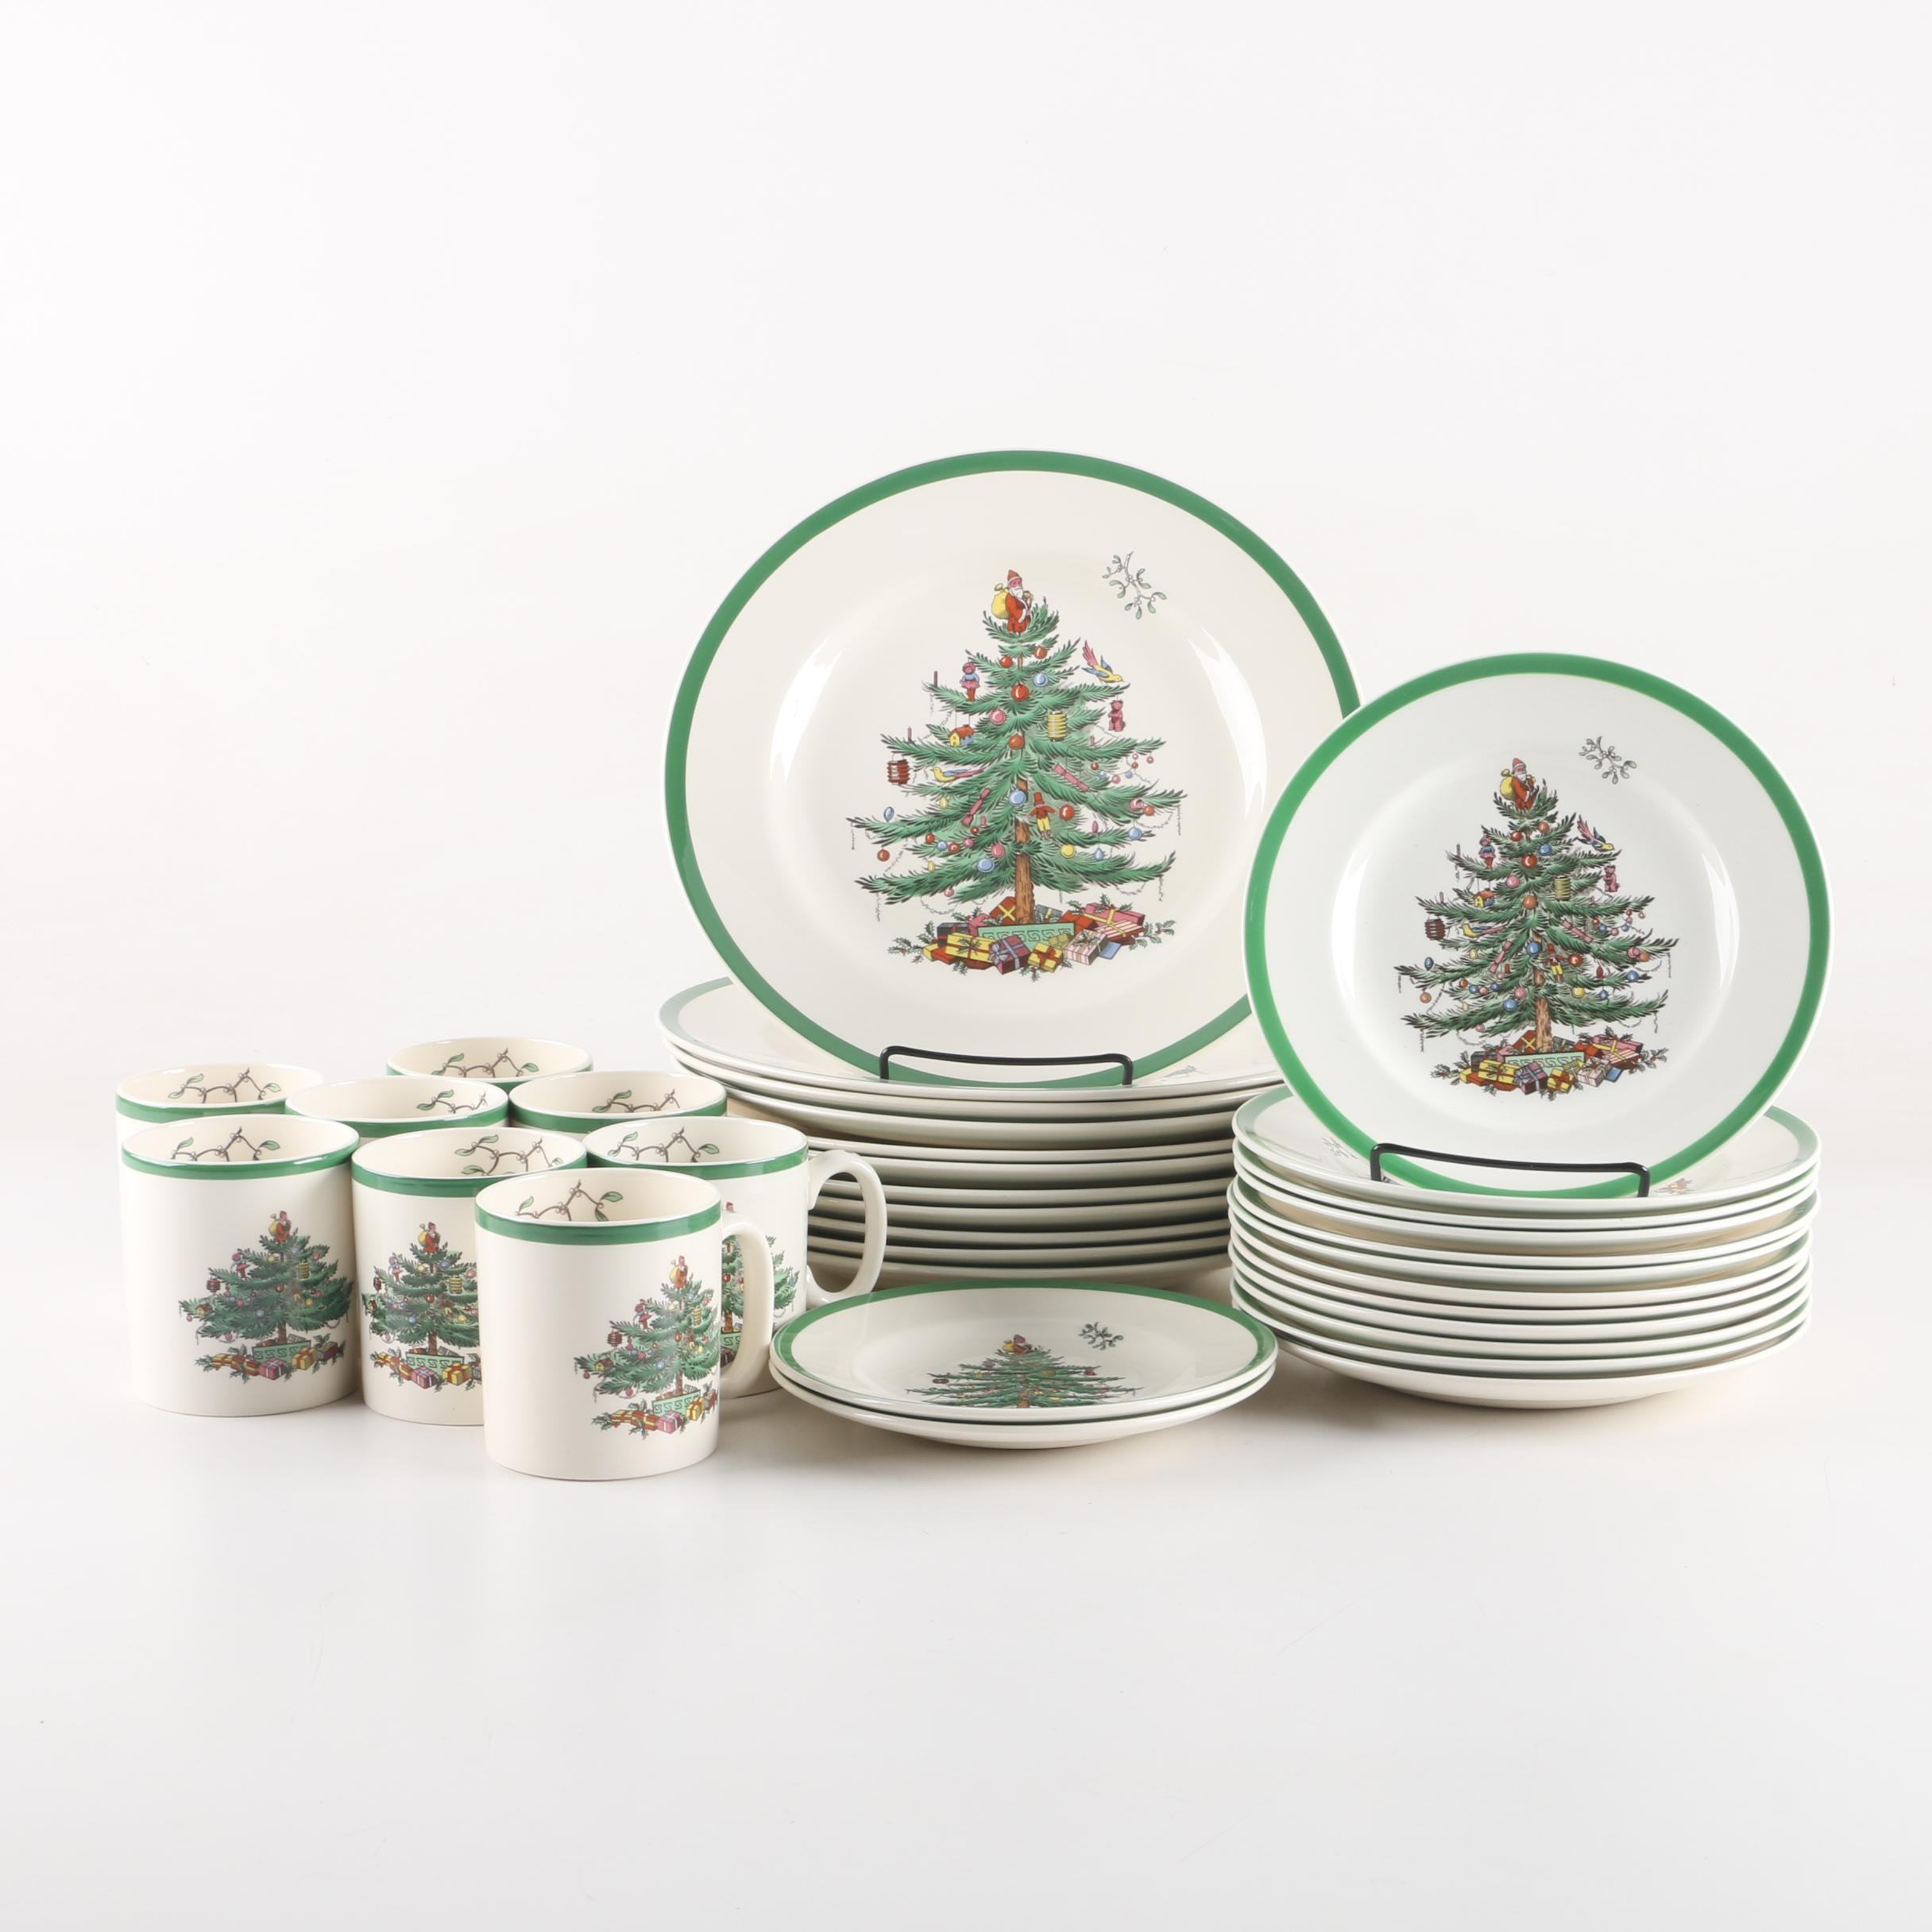 Vintage Spode 'Christmas Tree' Dinnerware